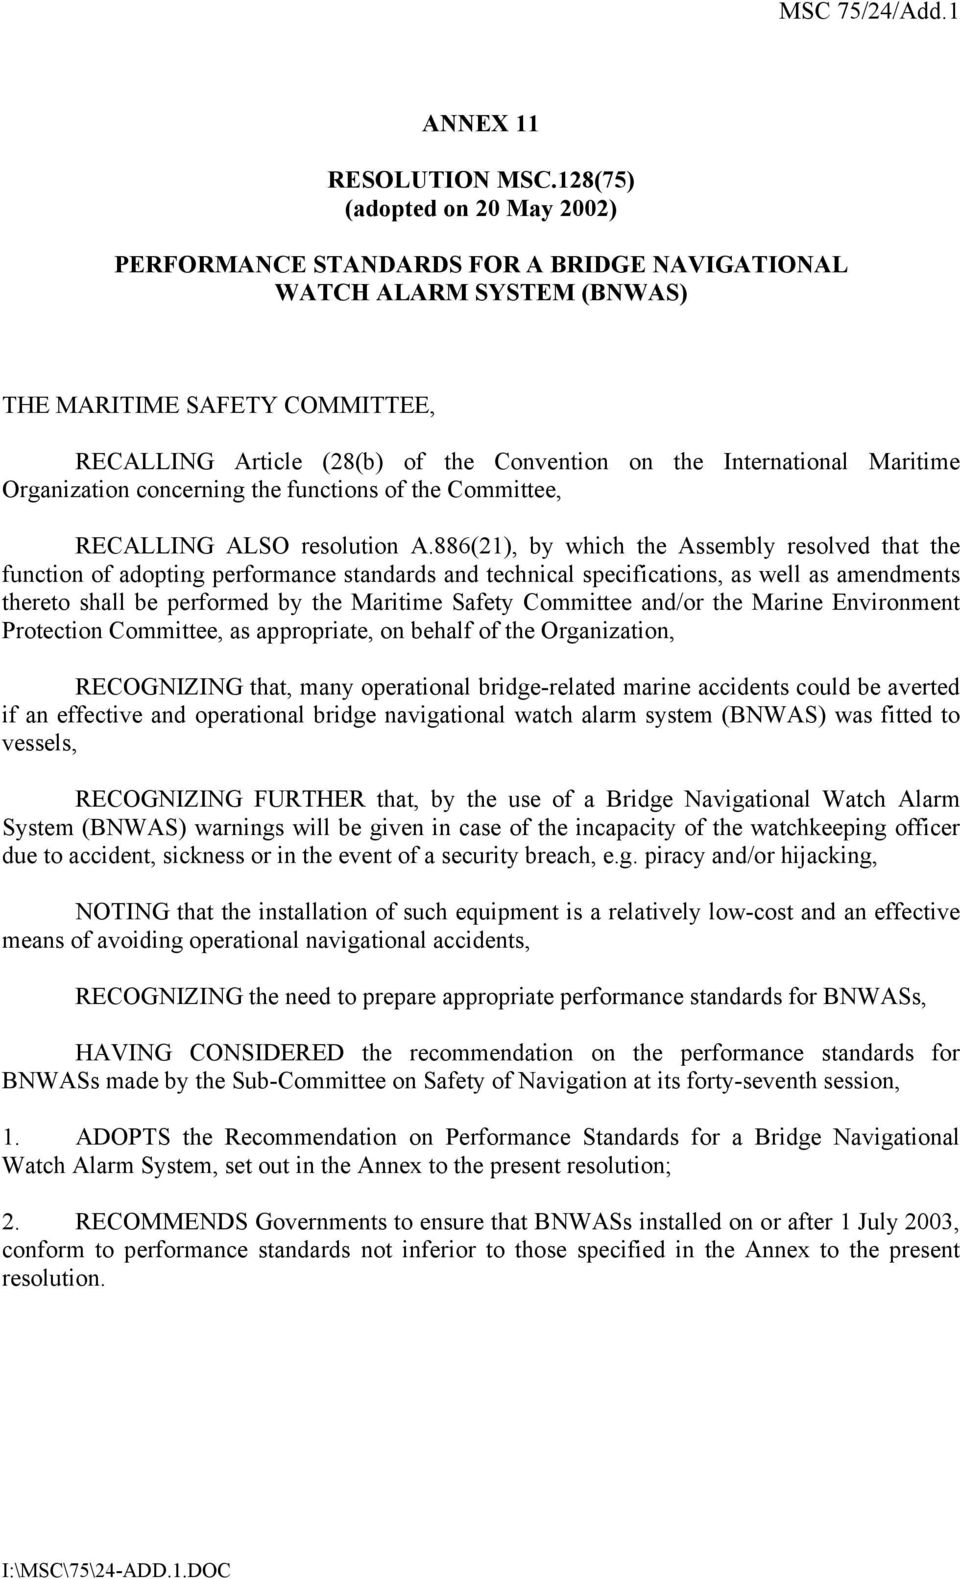 International Maritime Organization concerning the functions of the Committee, RECALLING ALSO resolution A.